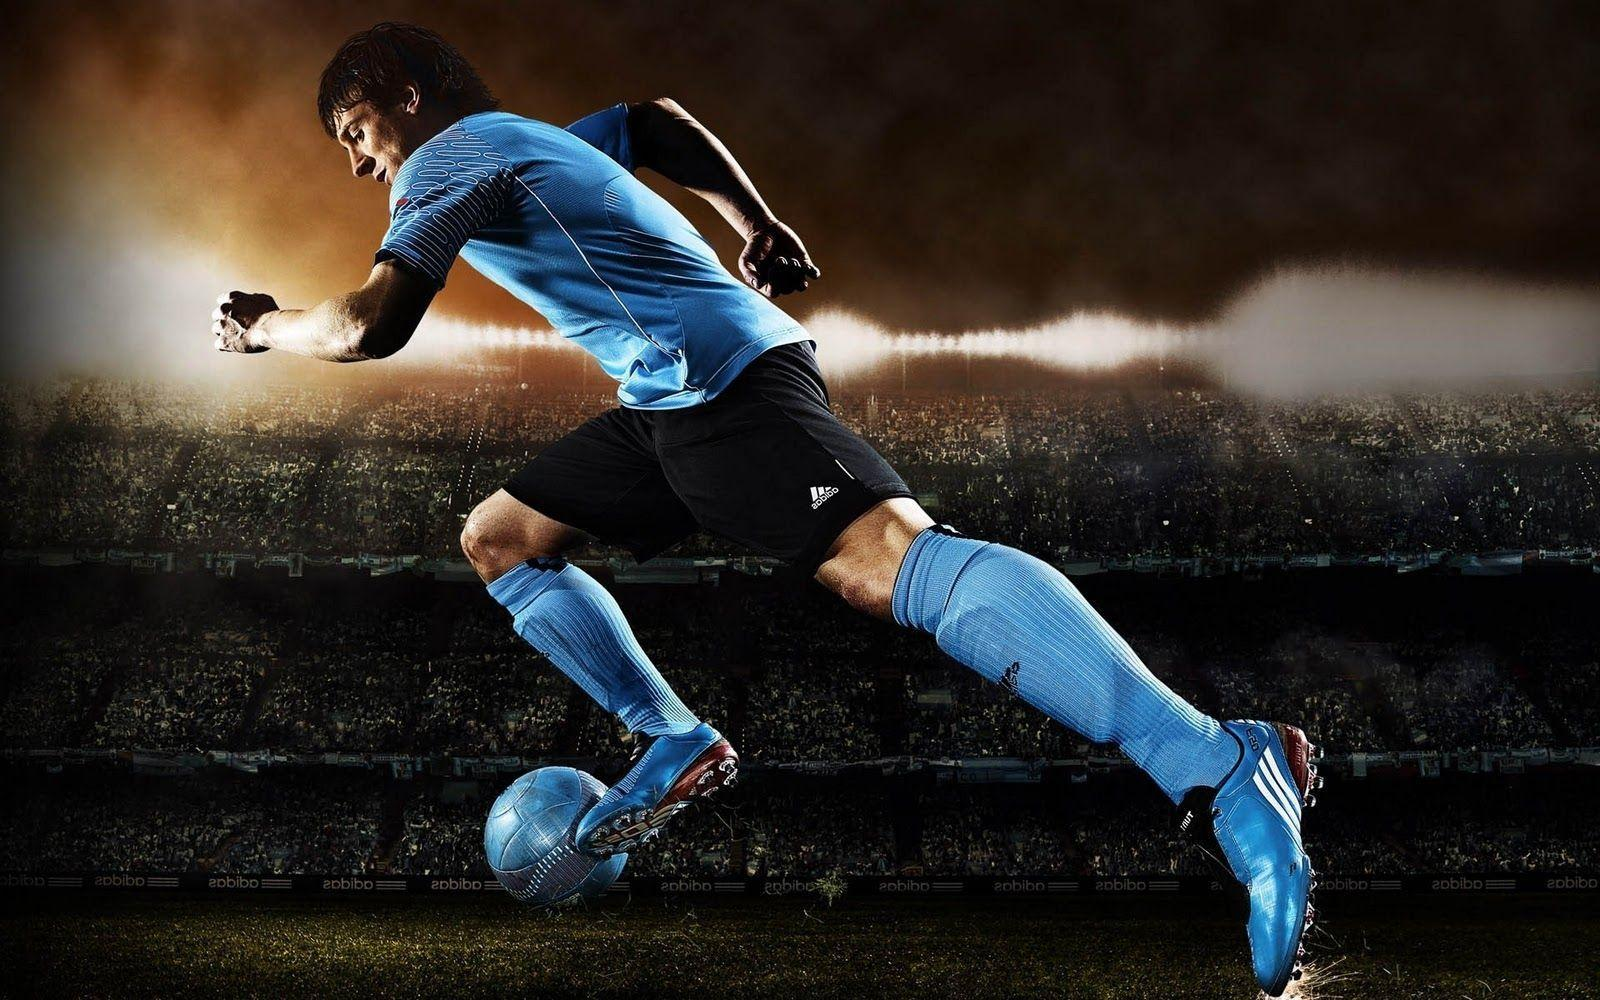 Sports Backgrounds: Best Sports Wallpapers